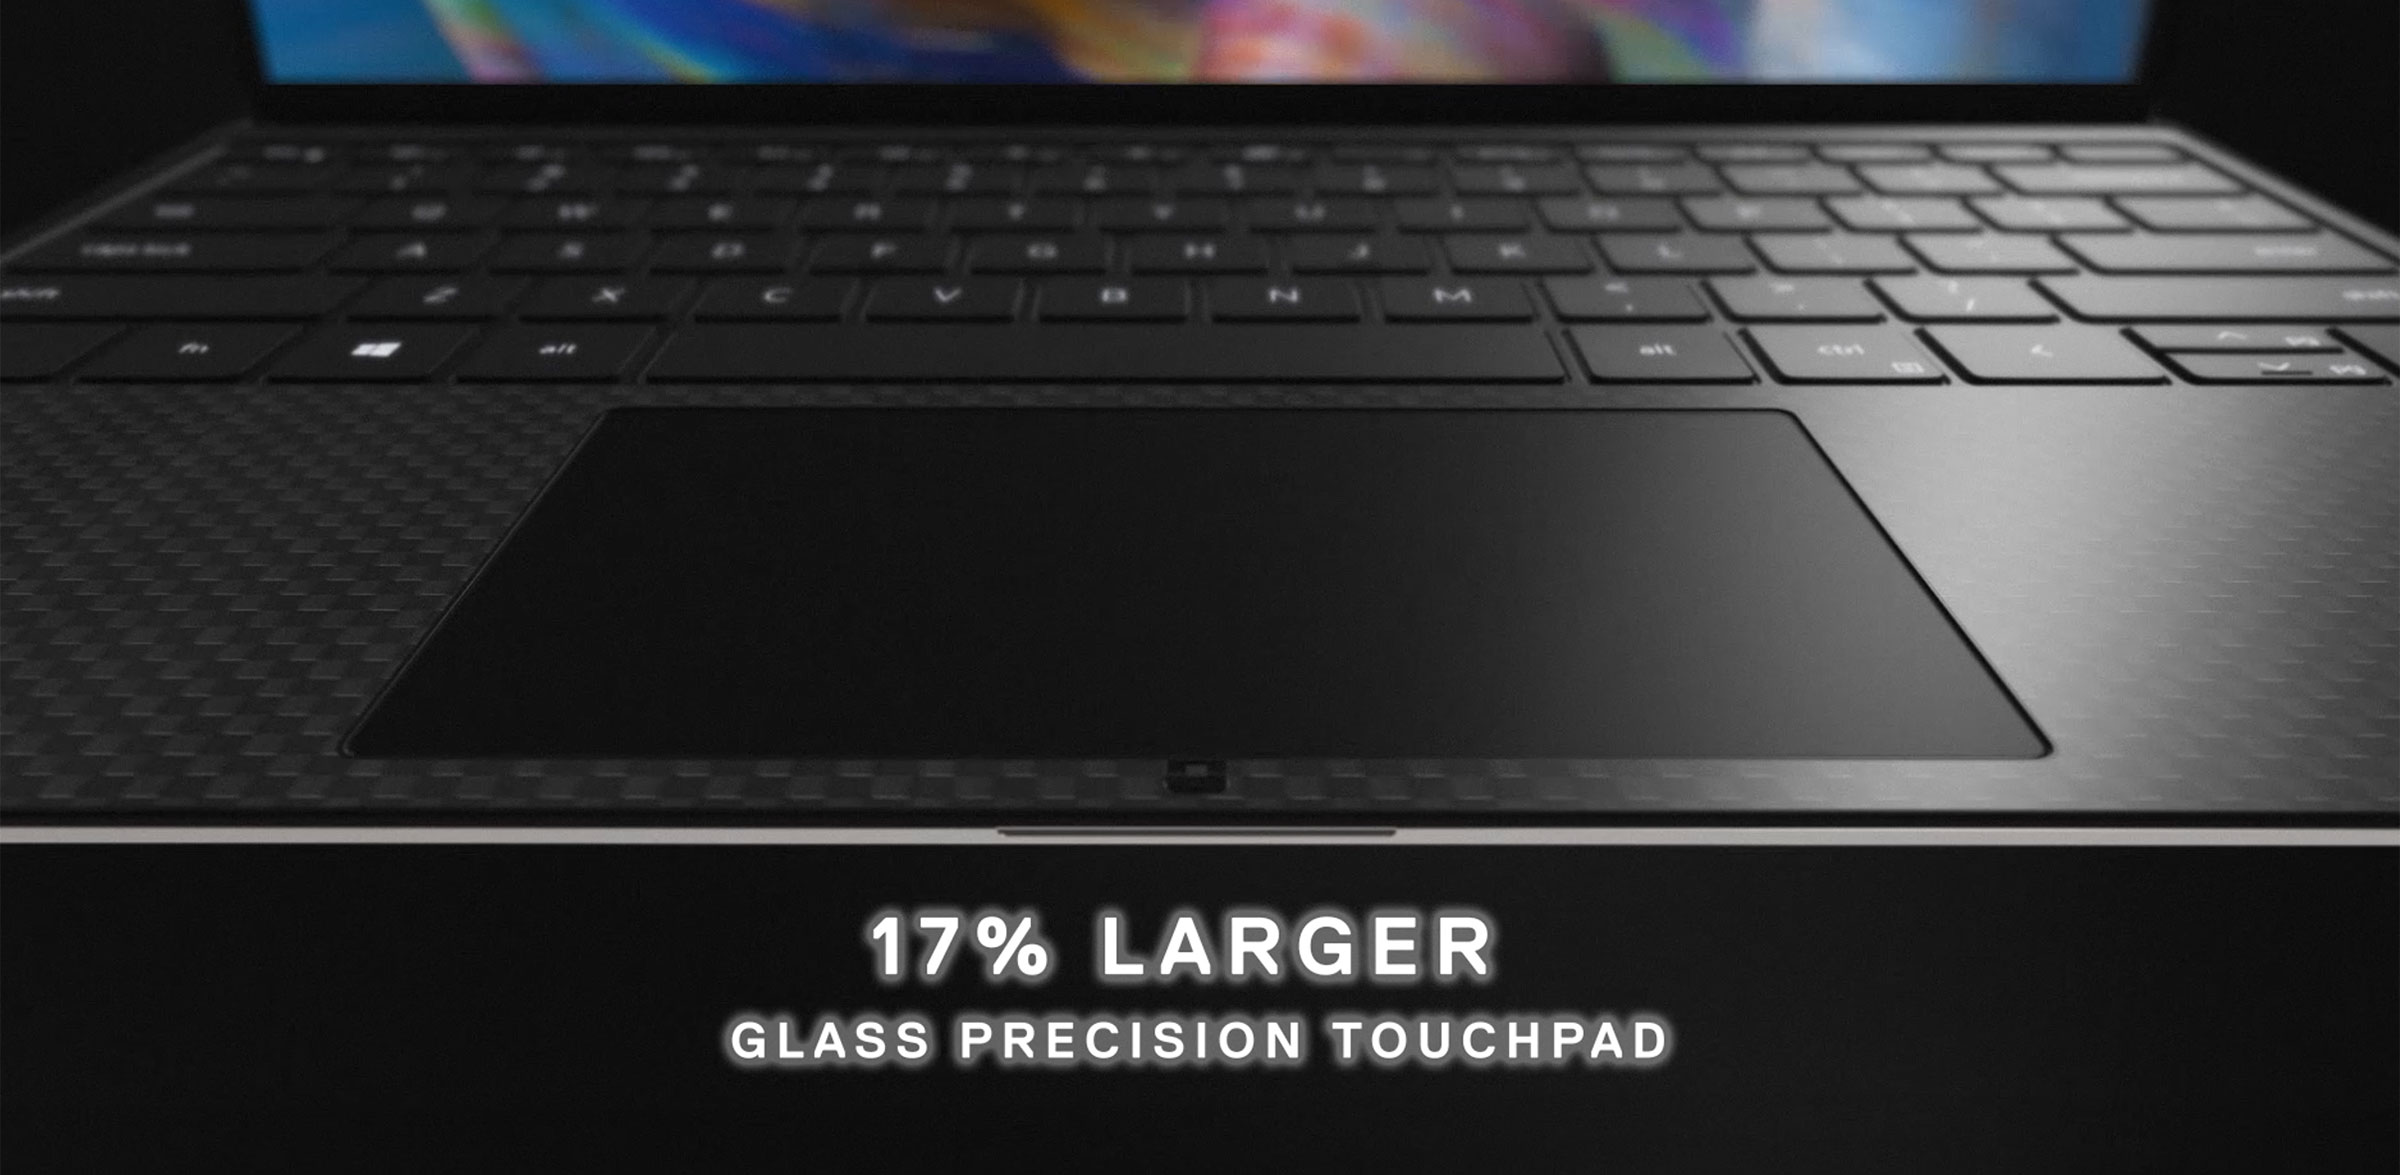 Dell XPS 13 9300 larger clickpad